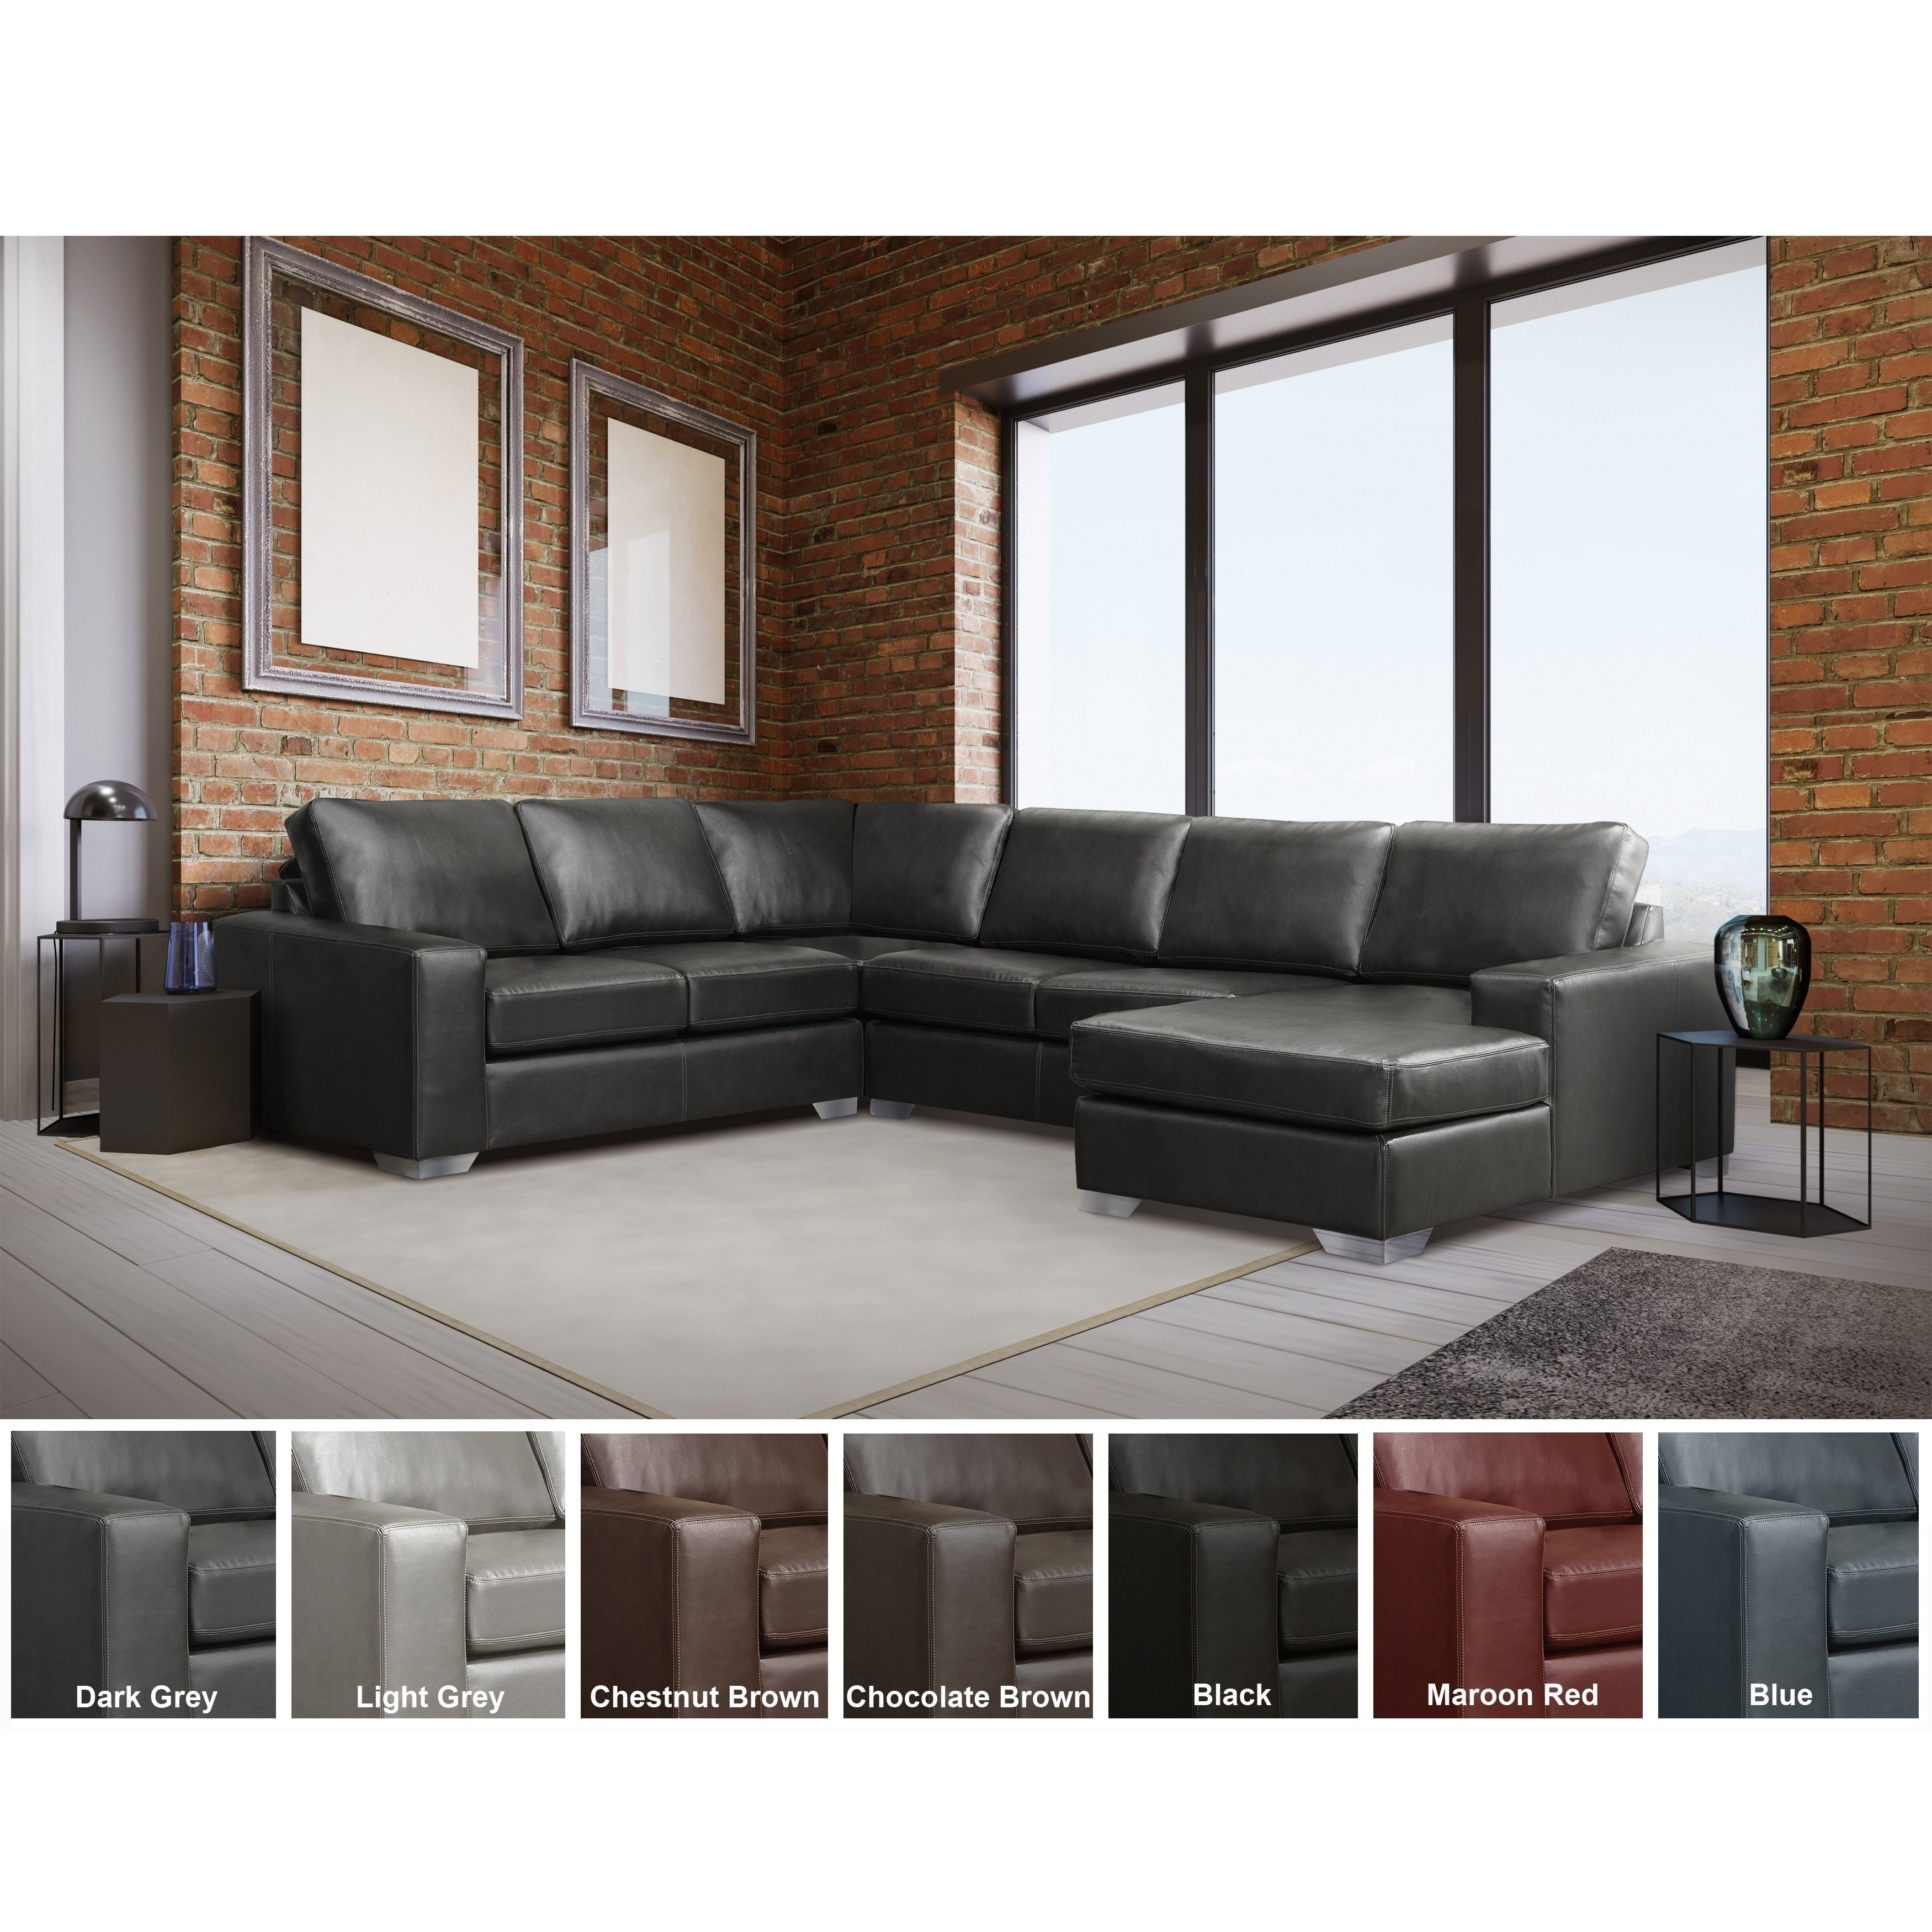 Buy Leather Sectional Sofas Online at Overstock | Our Best ...